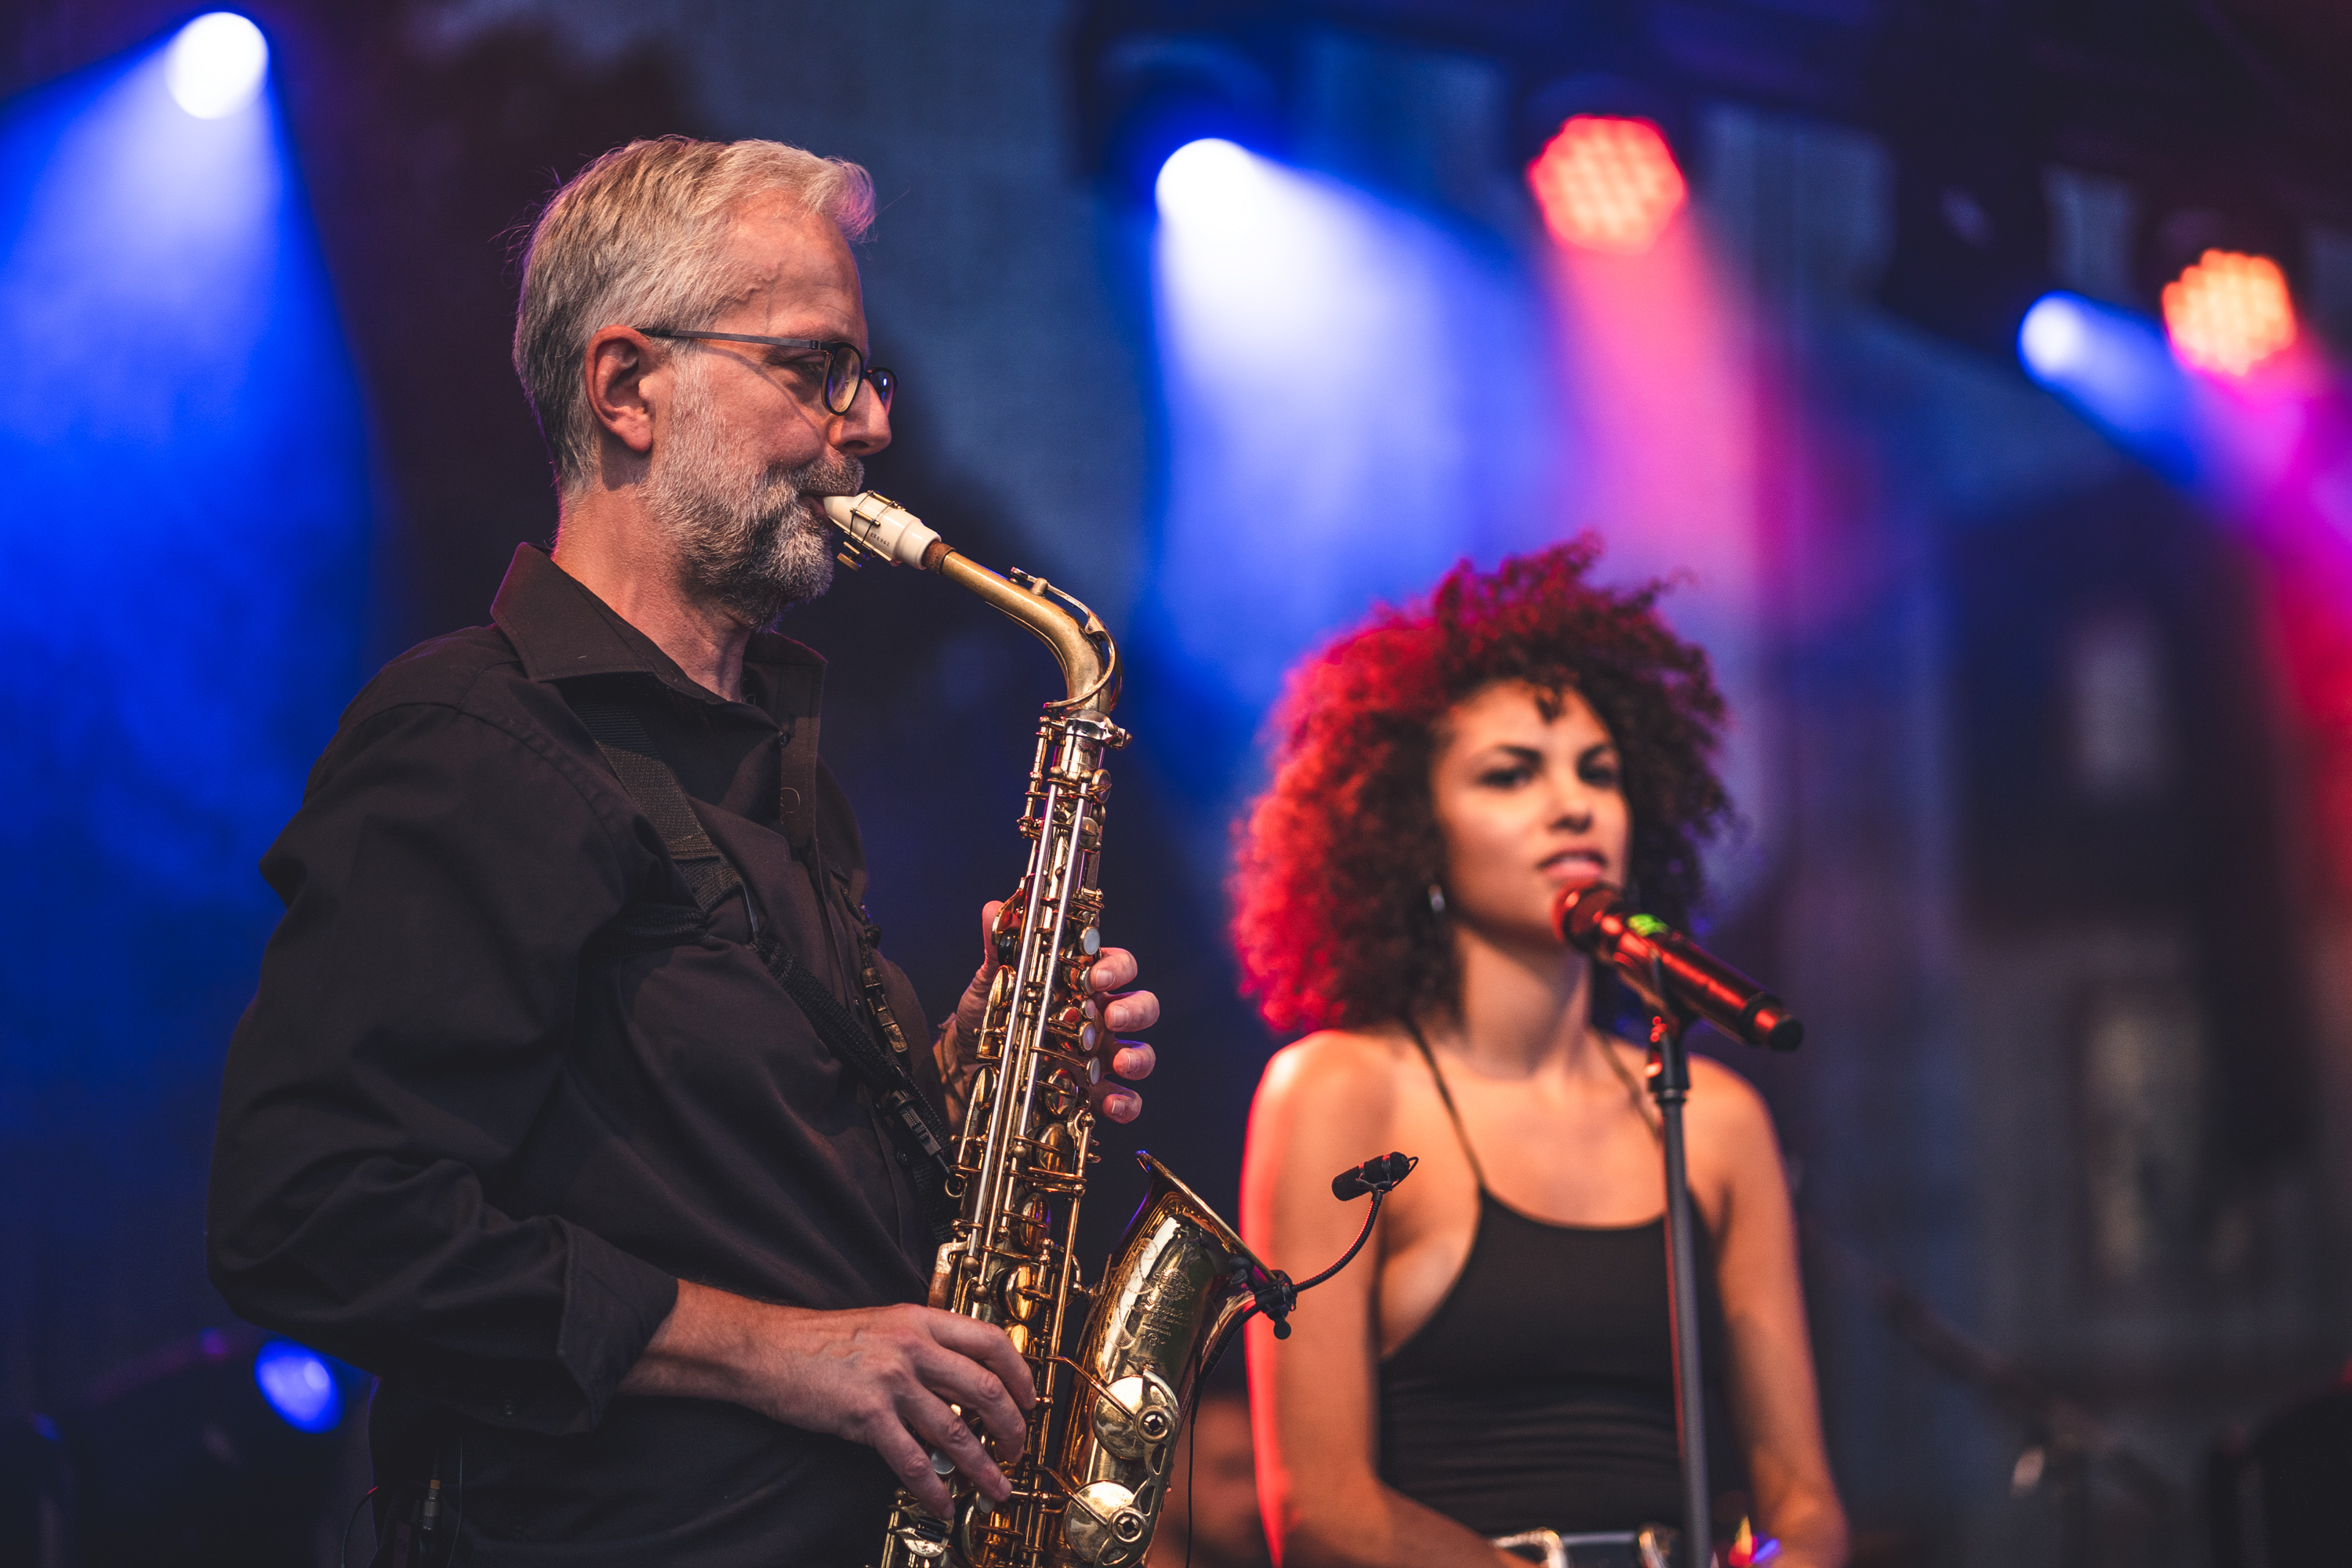 Ulli, Sax with Julianna, Skyline Club Band